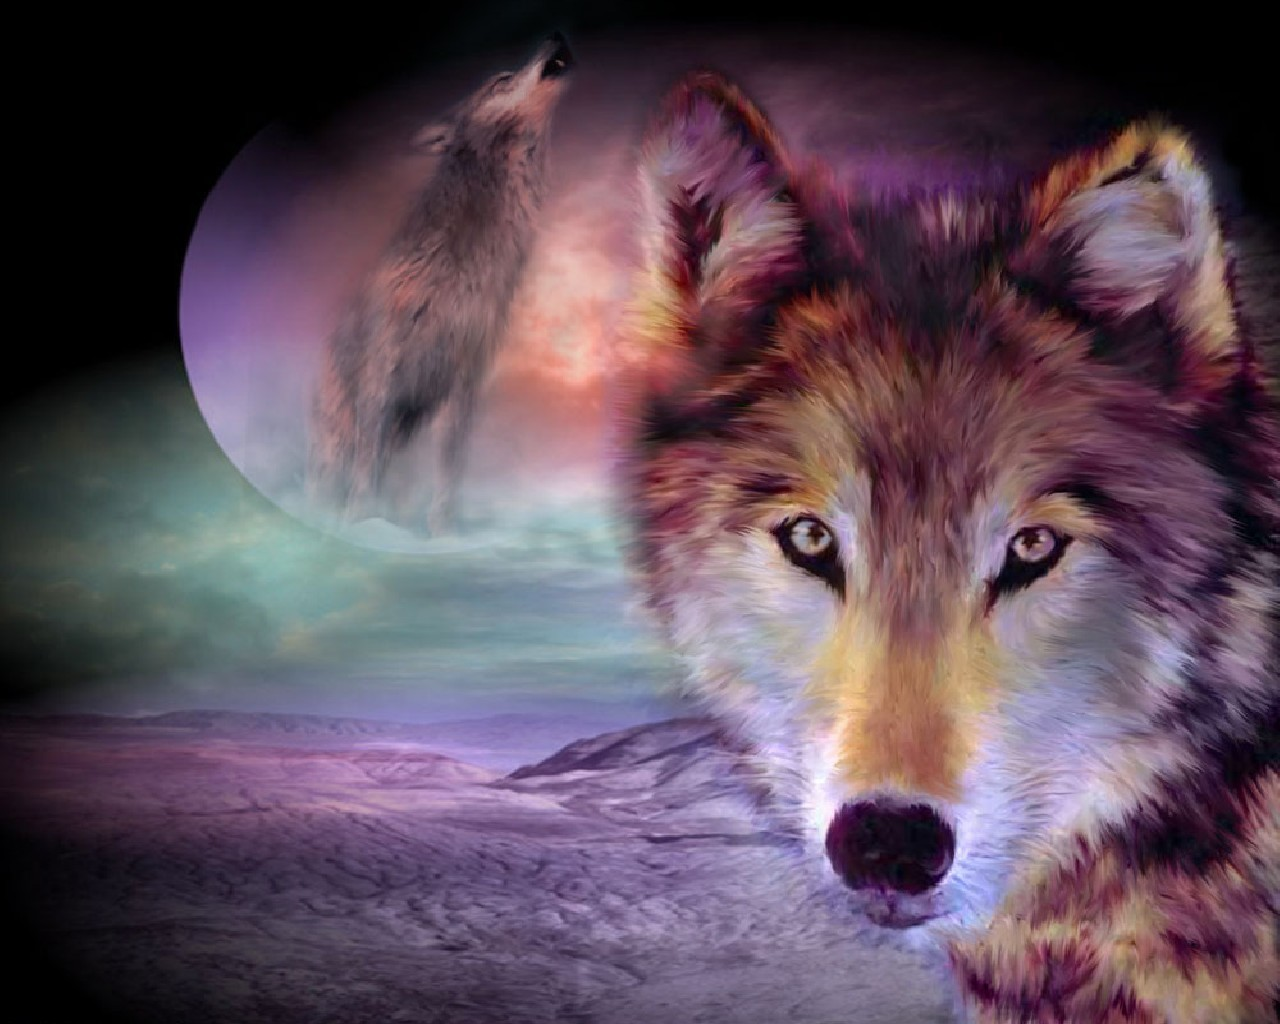 wolf desktop backgrounds : Ukrobstep  Top Ranked Wolf Wallpapers, PCNHI, High Definition 1280x1024